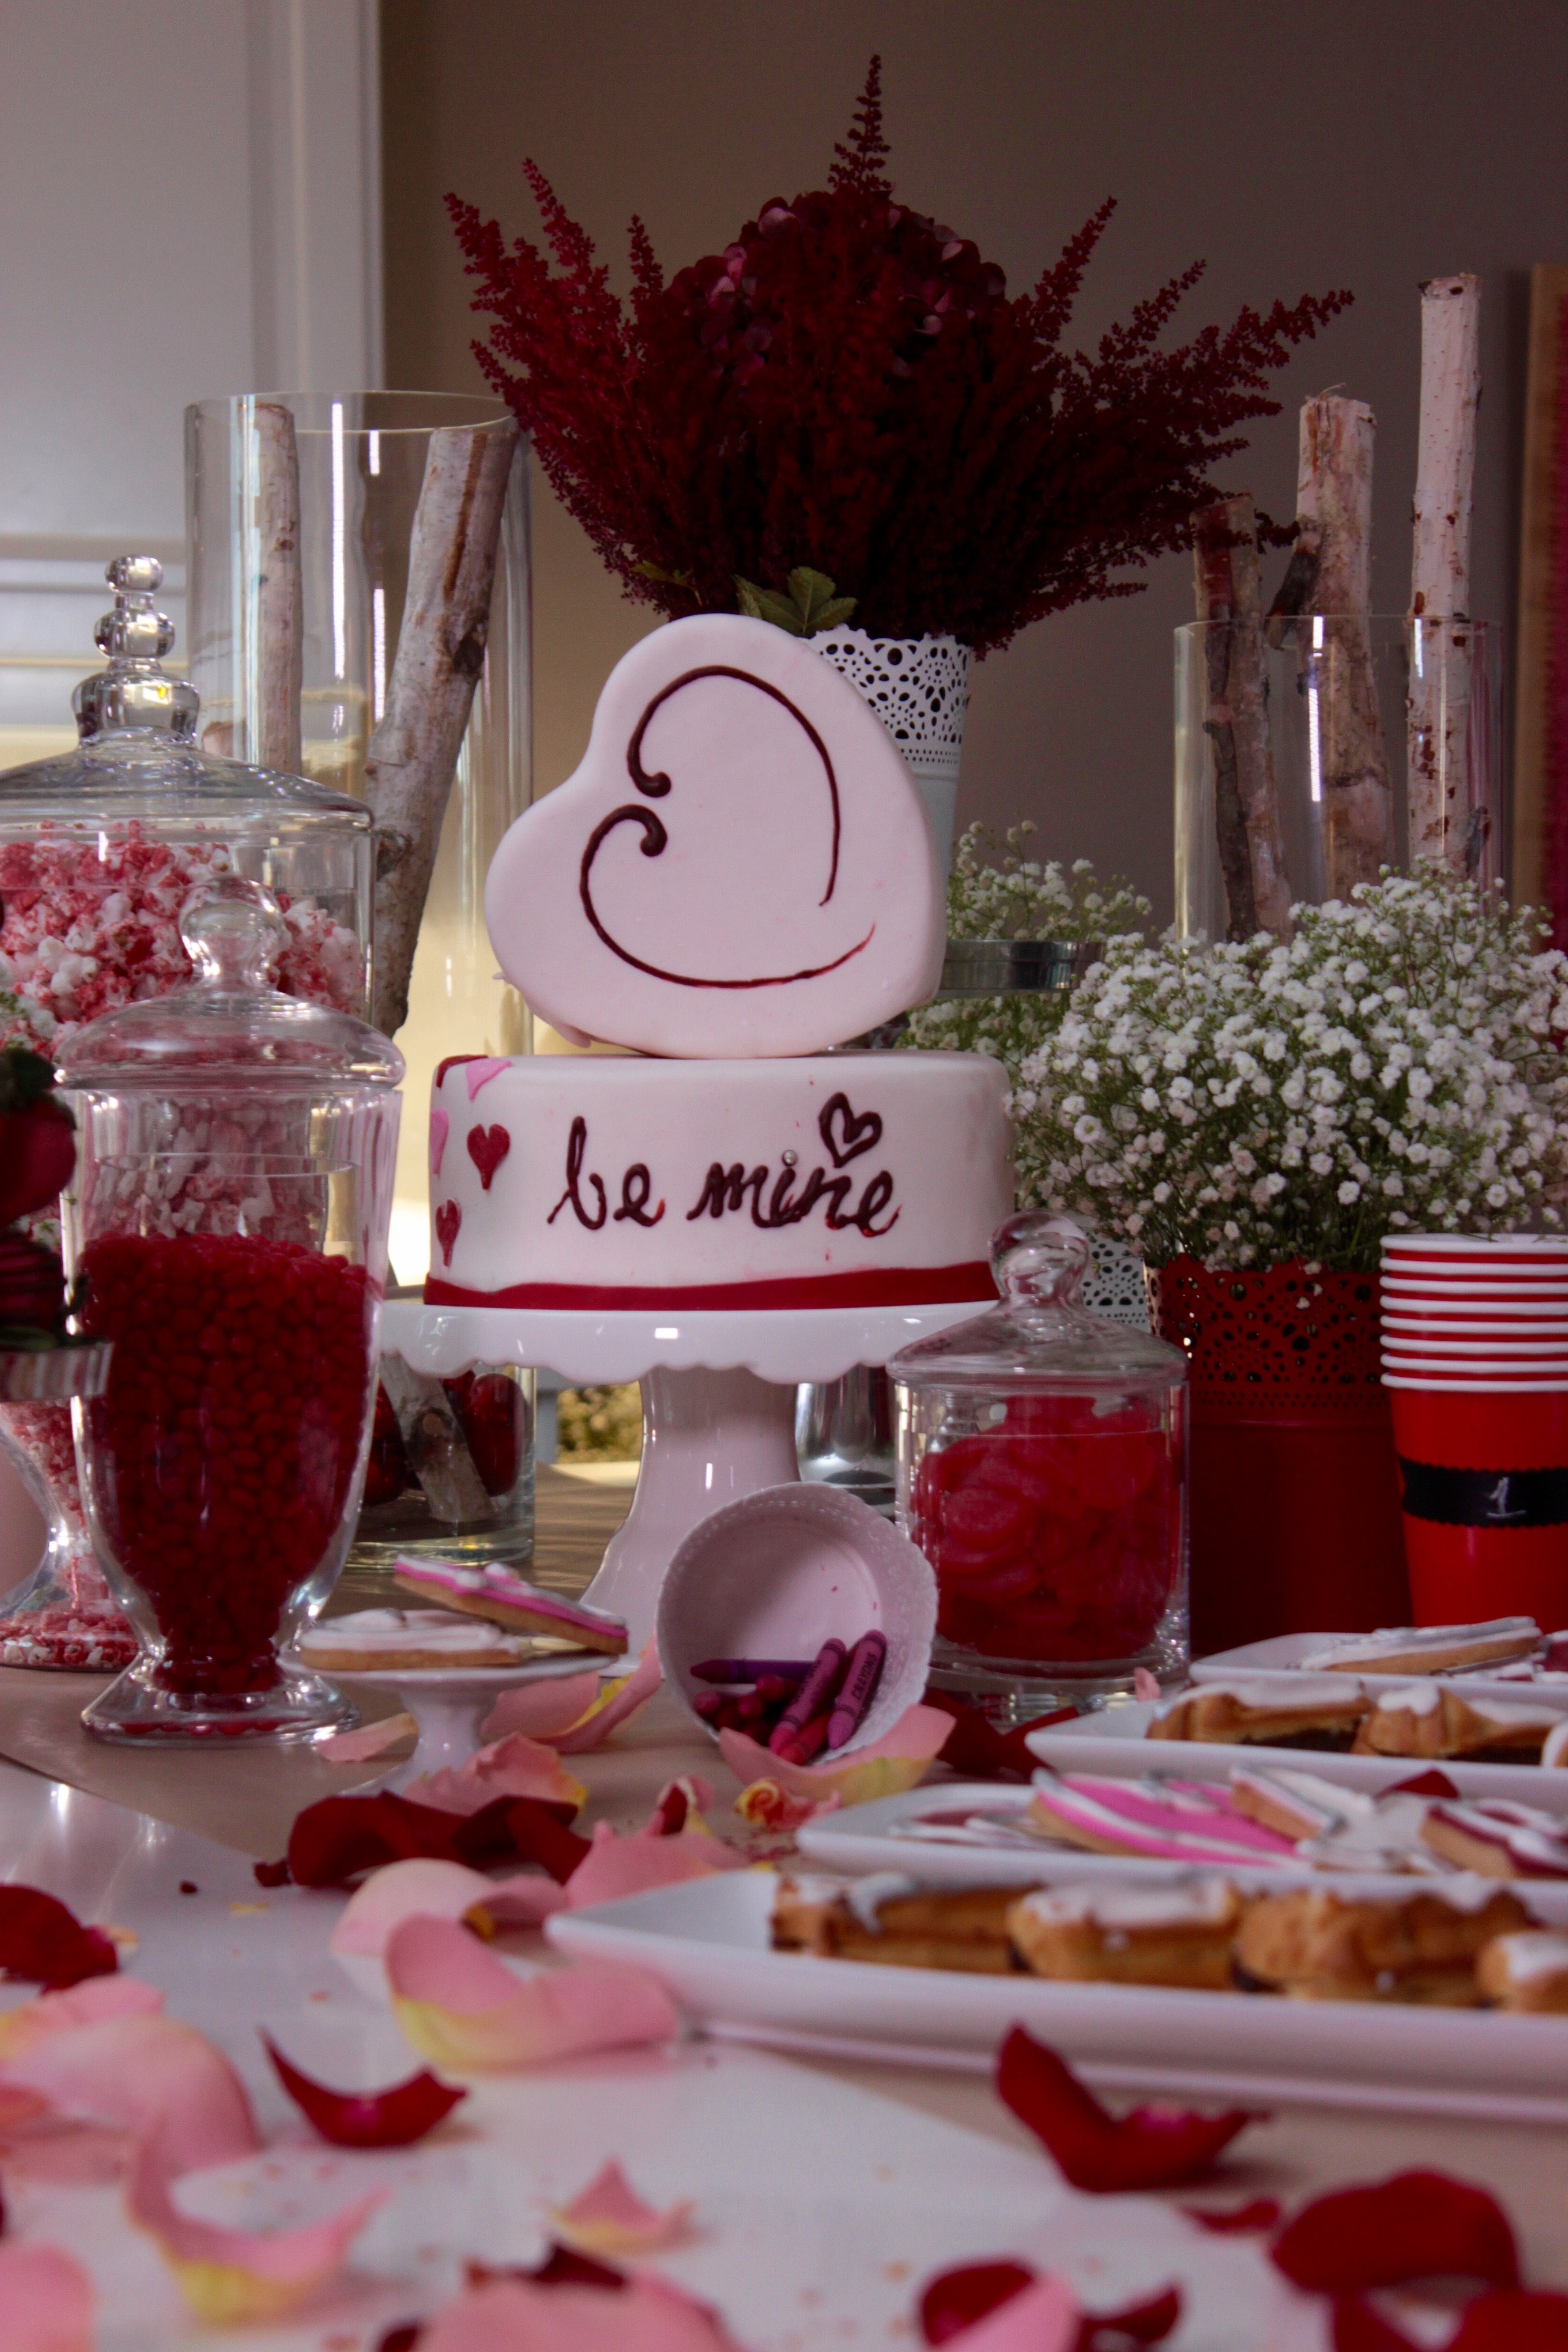 Adjoa's centrepiece on her beautiful sweet table